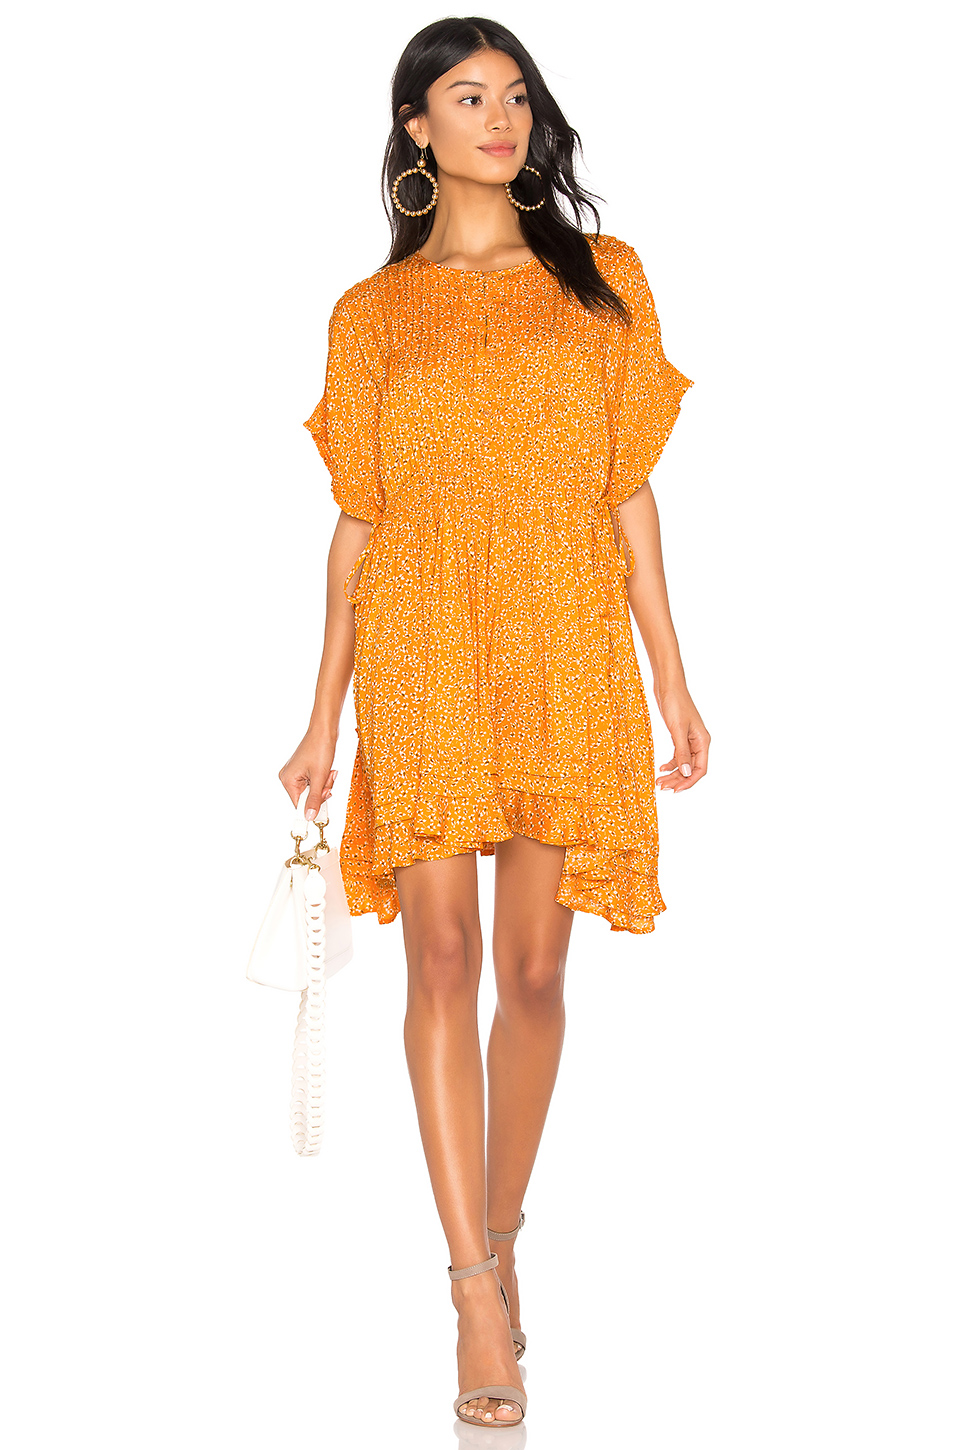 ce7fda6255 Buy Original Free People One Fine Day Mini Dress at Indonesia